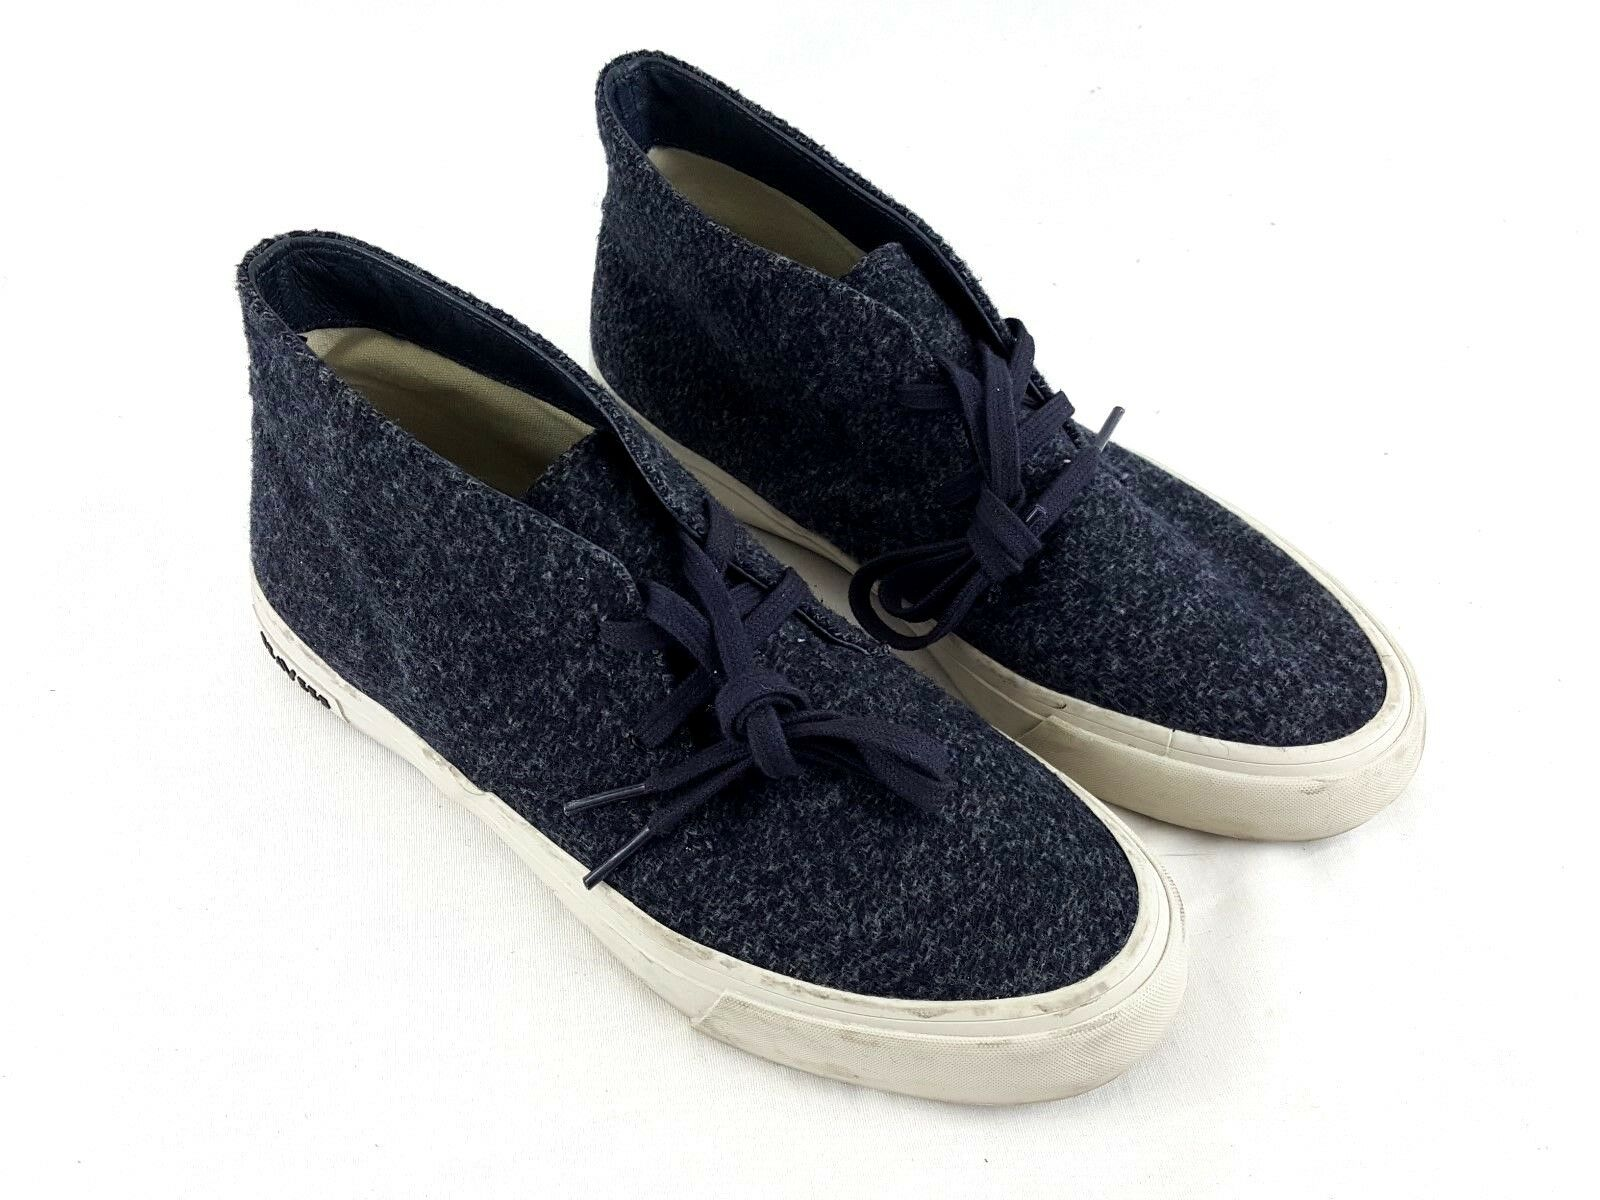 SEEVEES Wool Flannel Chukka Boots Blue Sneakers Shoes Womens sz 8 Maslon Desert